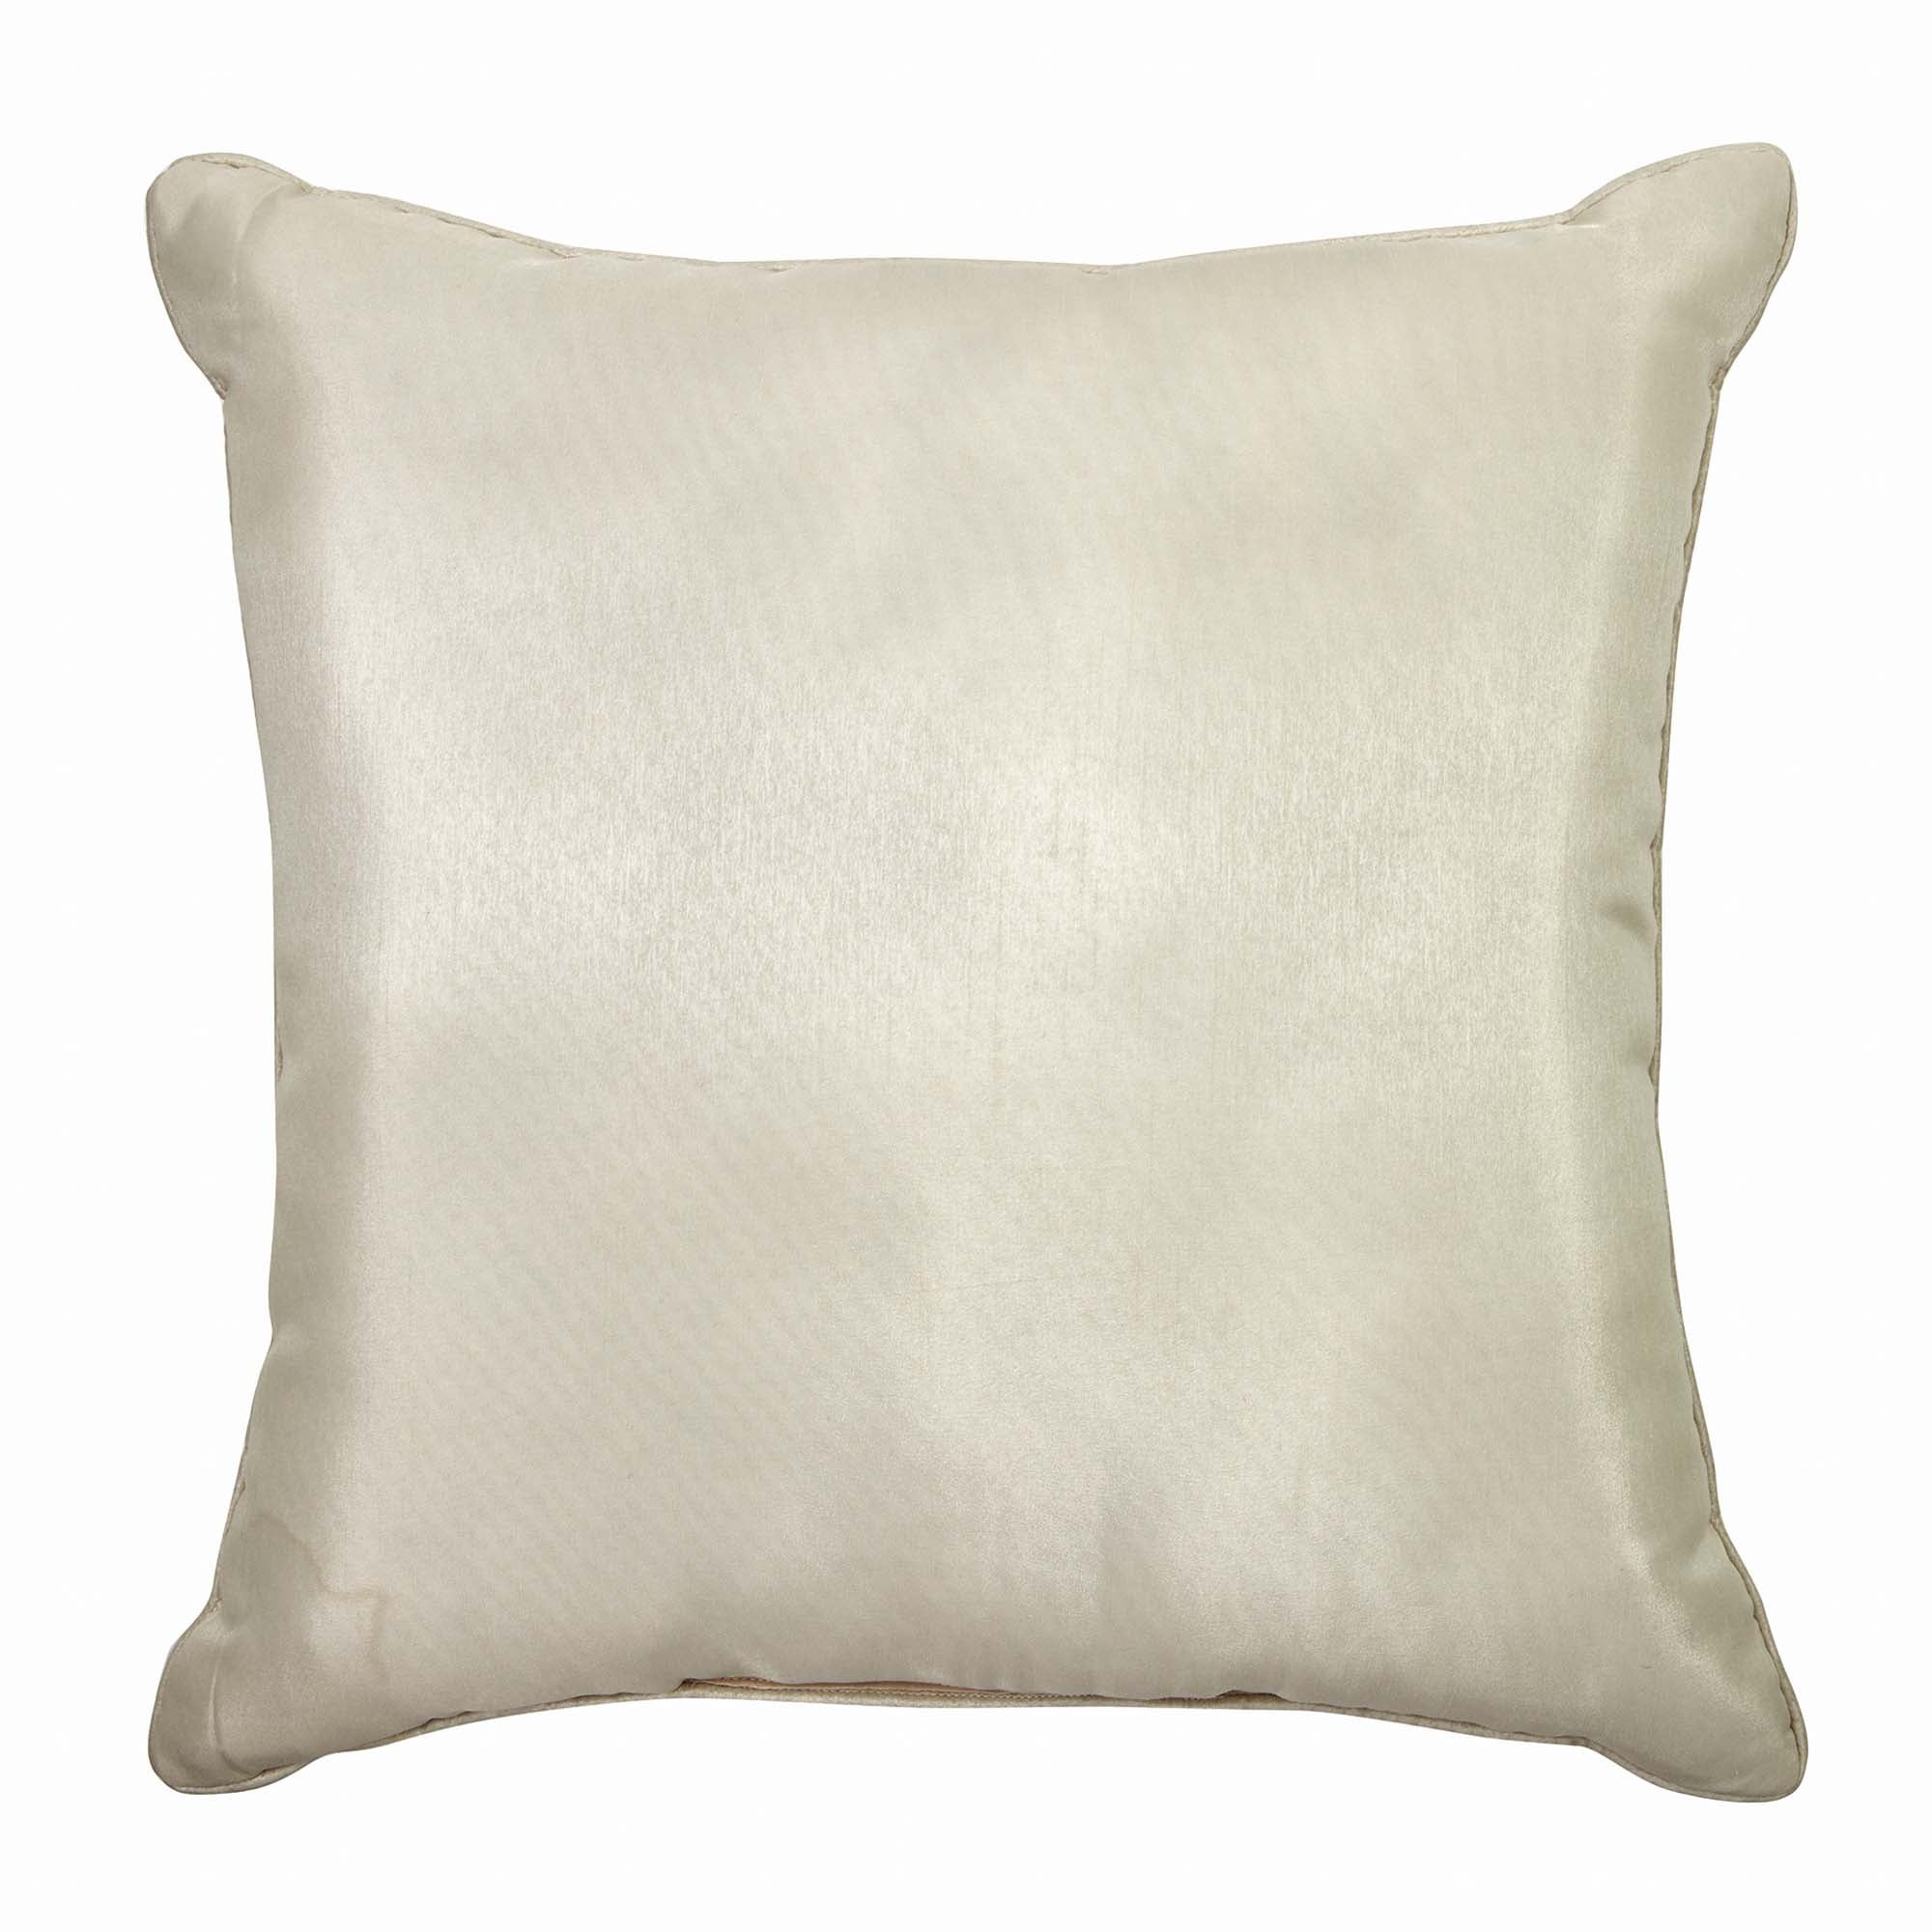 "Astrid Ivory Square Decorative Throw Pillow 20"" x 20"" [Luxury comforter Sets] [by Latest Bedding]"